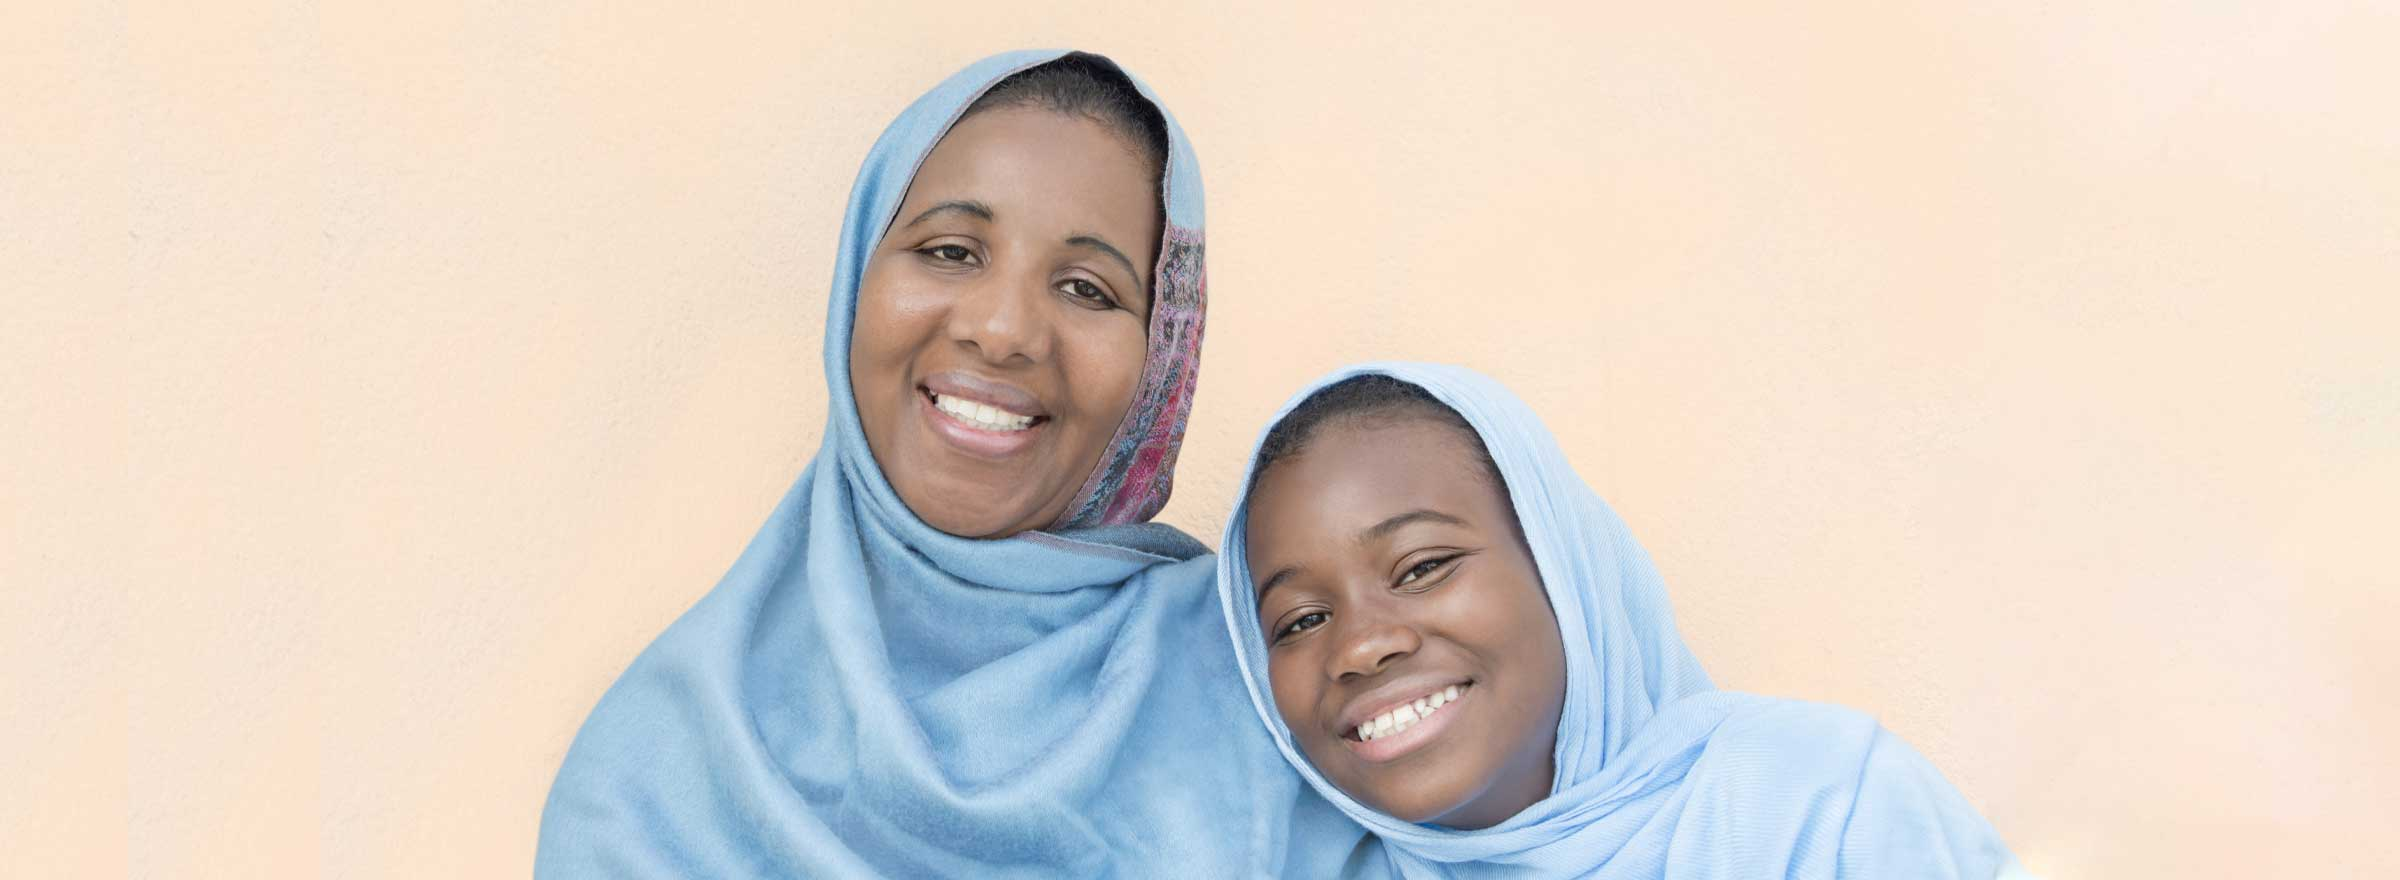 two smiling women wearing headscarves